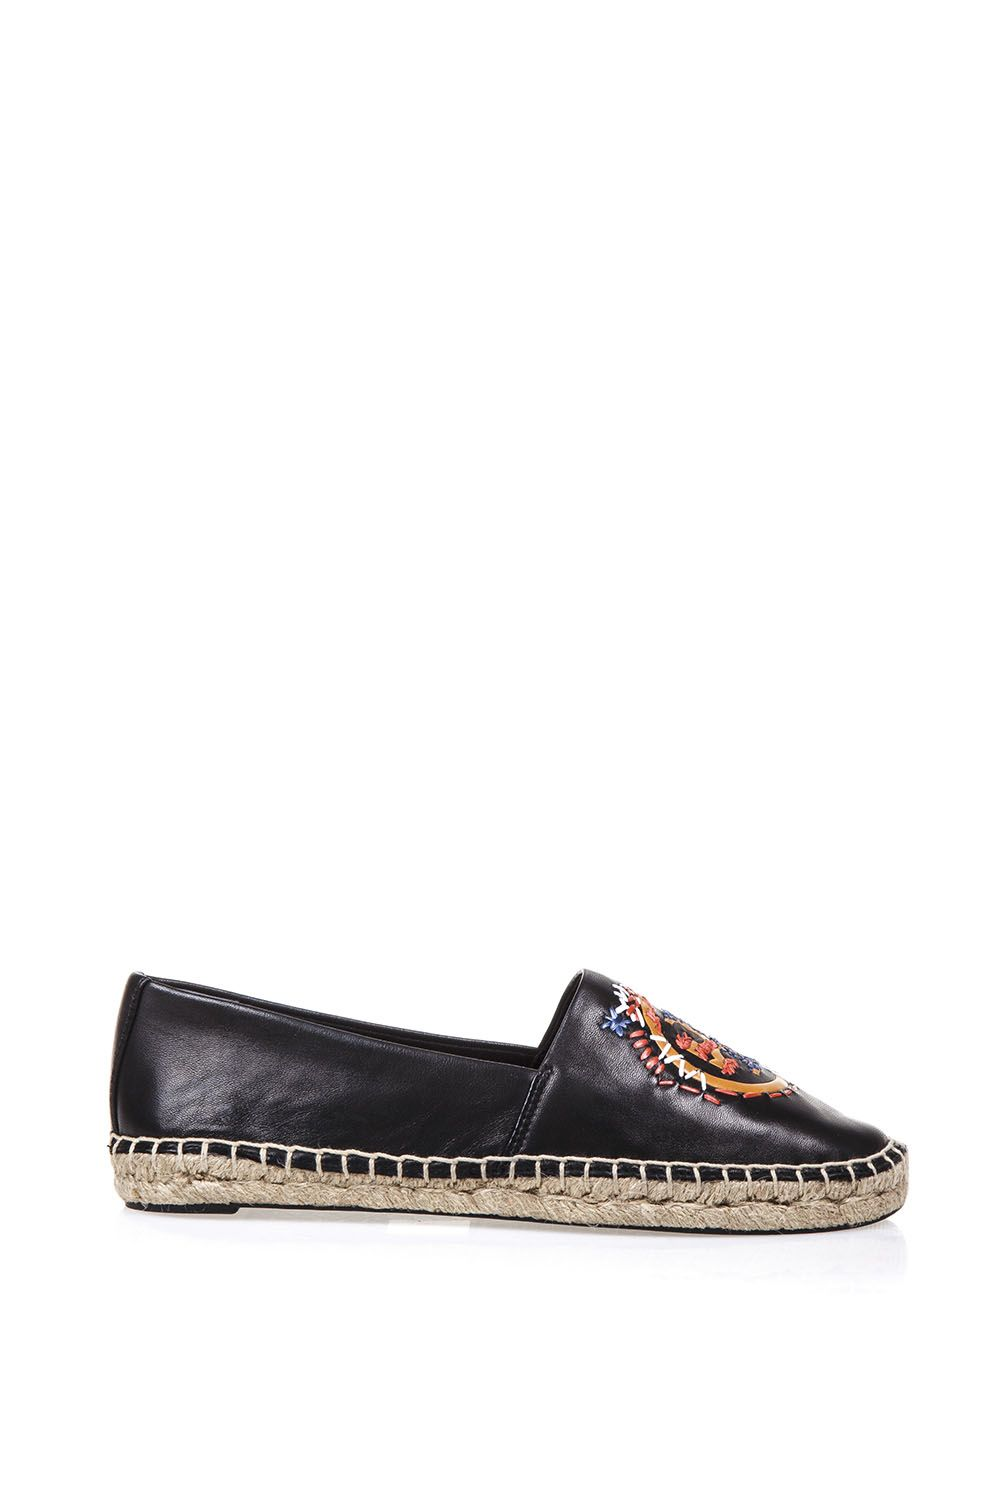 273d6ed2b0d5 Tory Burch Tory Burch Embellished Nappa Leather Espadrilles - Black ...